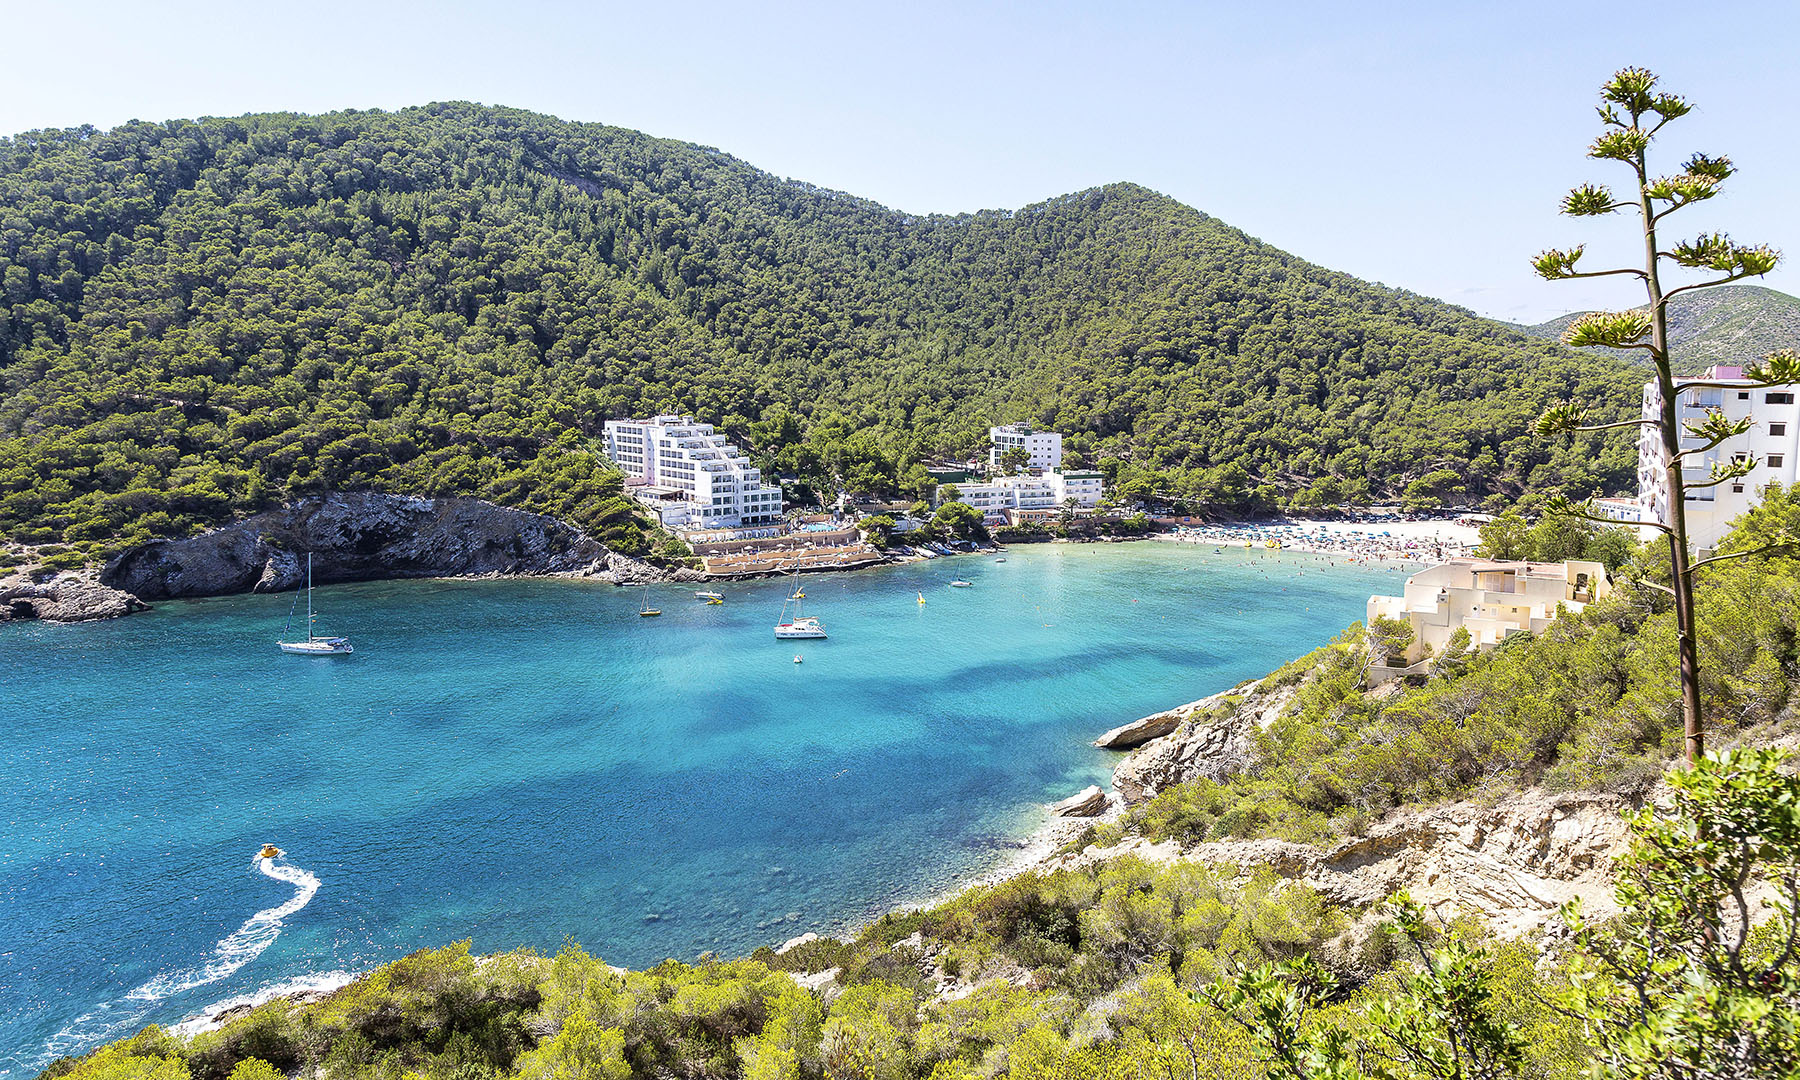 IBIZA – THE DESTINATION WITH TWO FACES